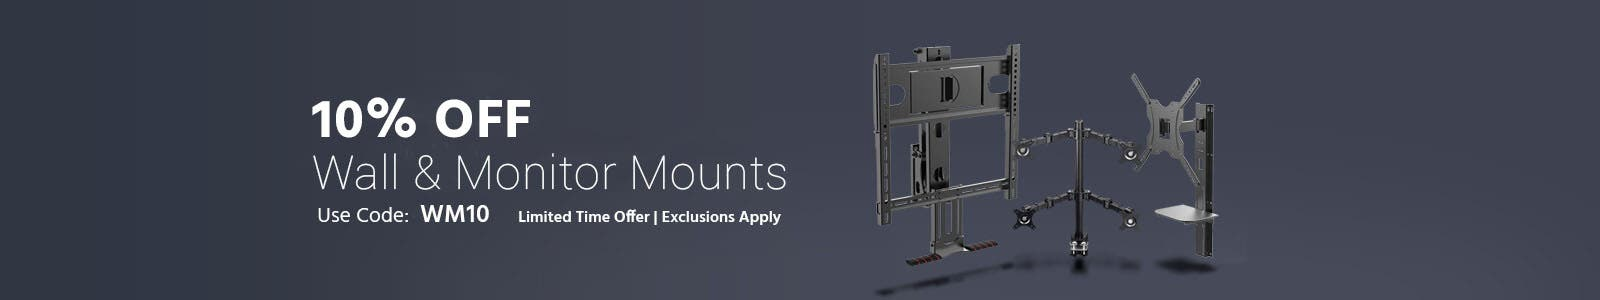 10% OFF Wall and Monitor mounts. use code: wm10